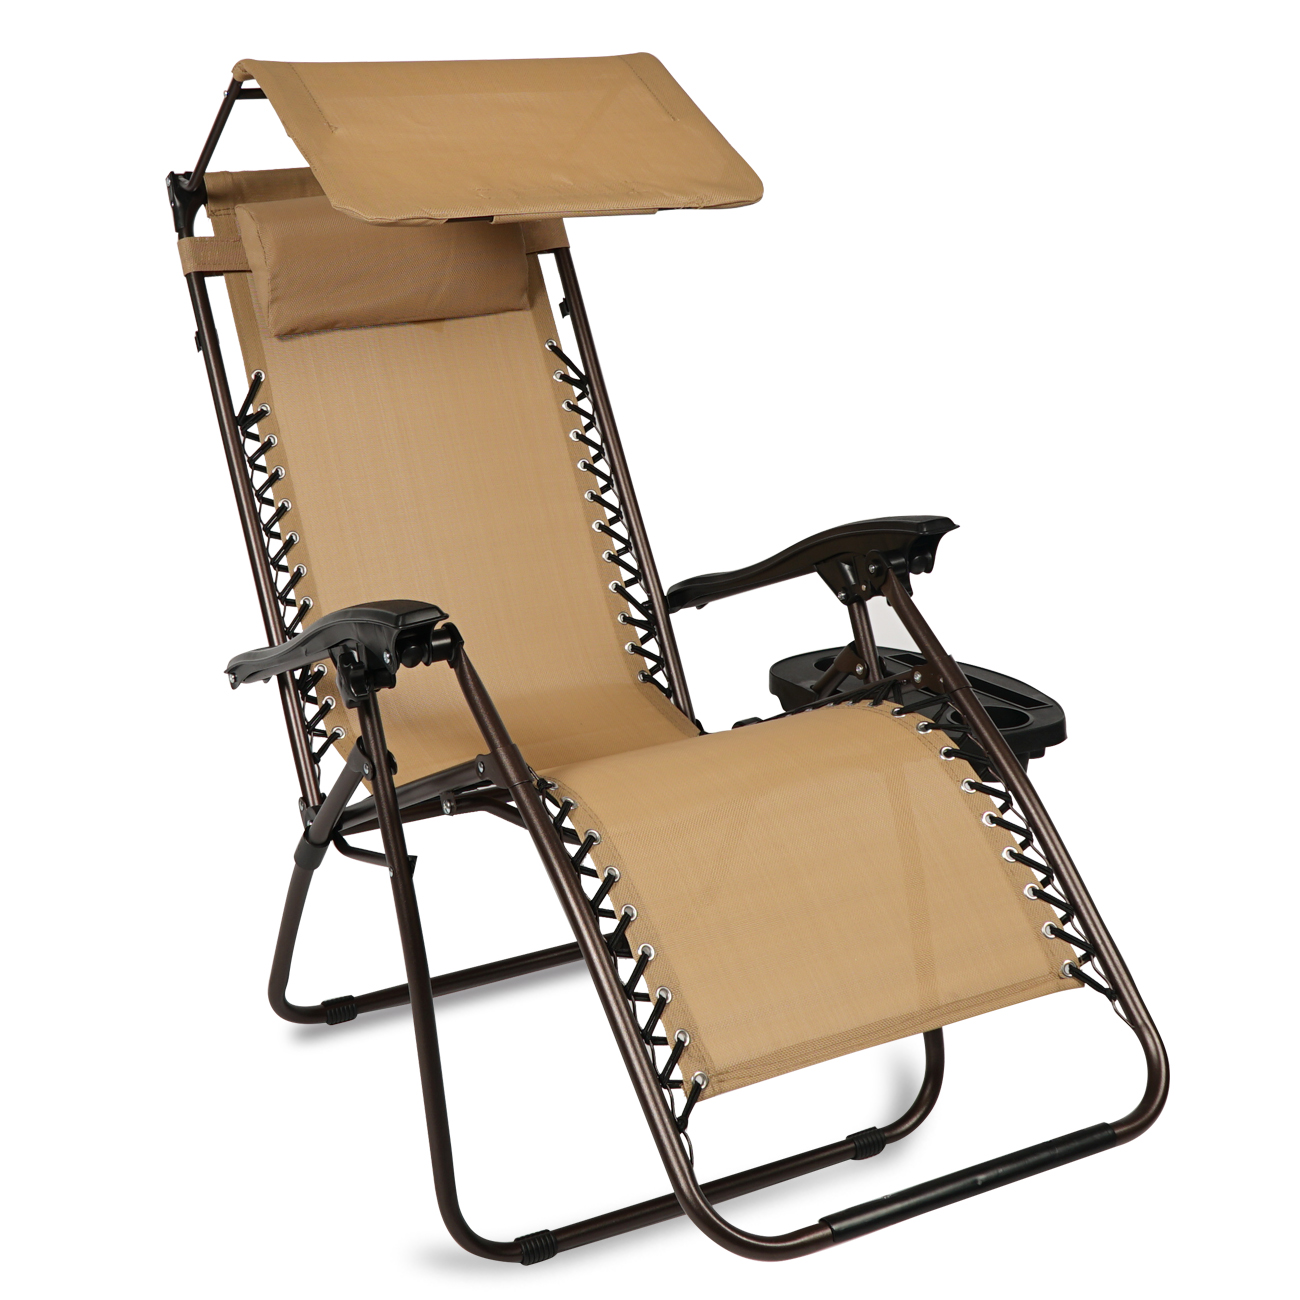 BELLEZE Zero Gravity Lounge Chair with Pillow Patio Seat with Canopy Folding Adjustable Reclining Cup Holder, Beige